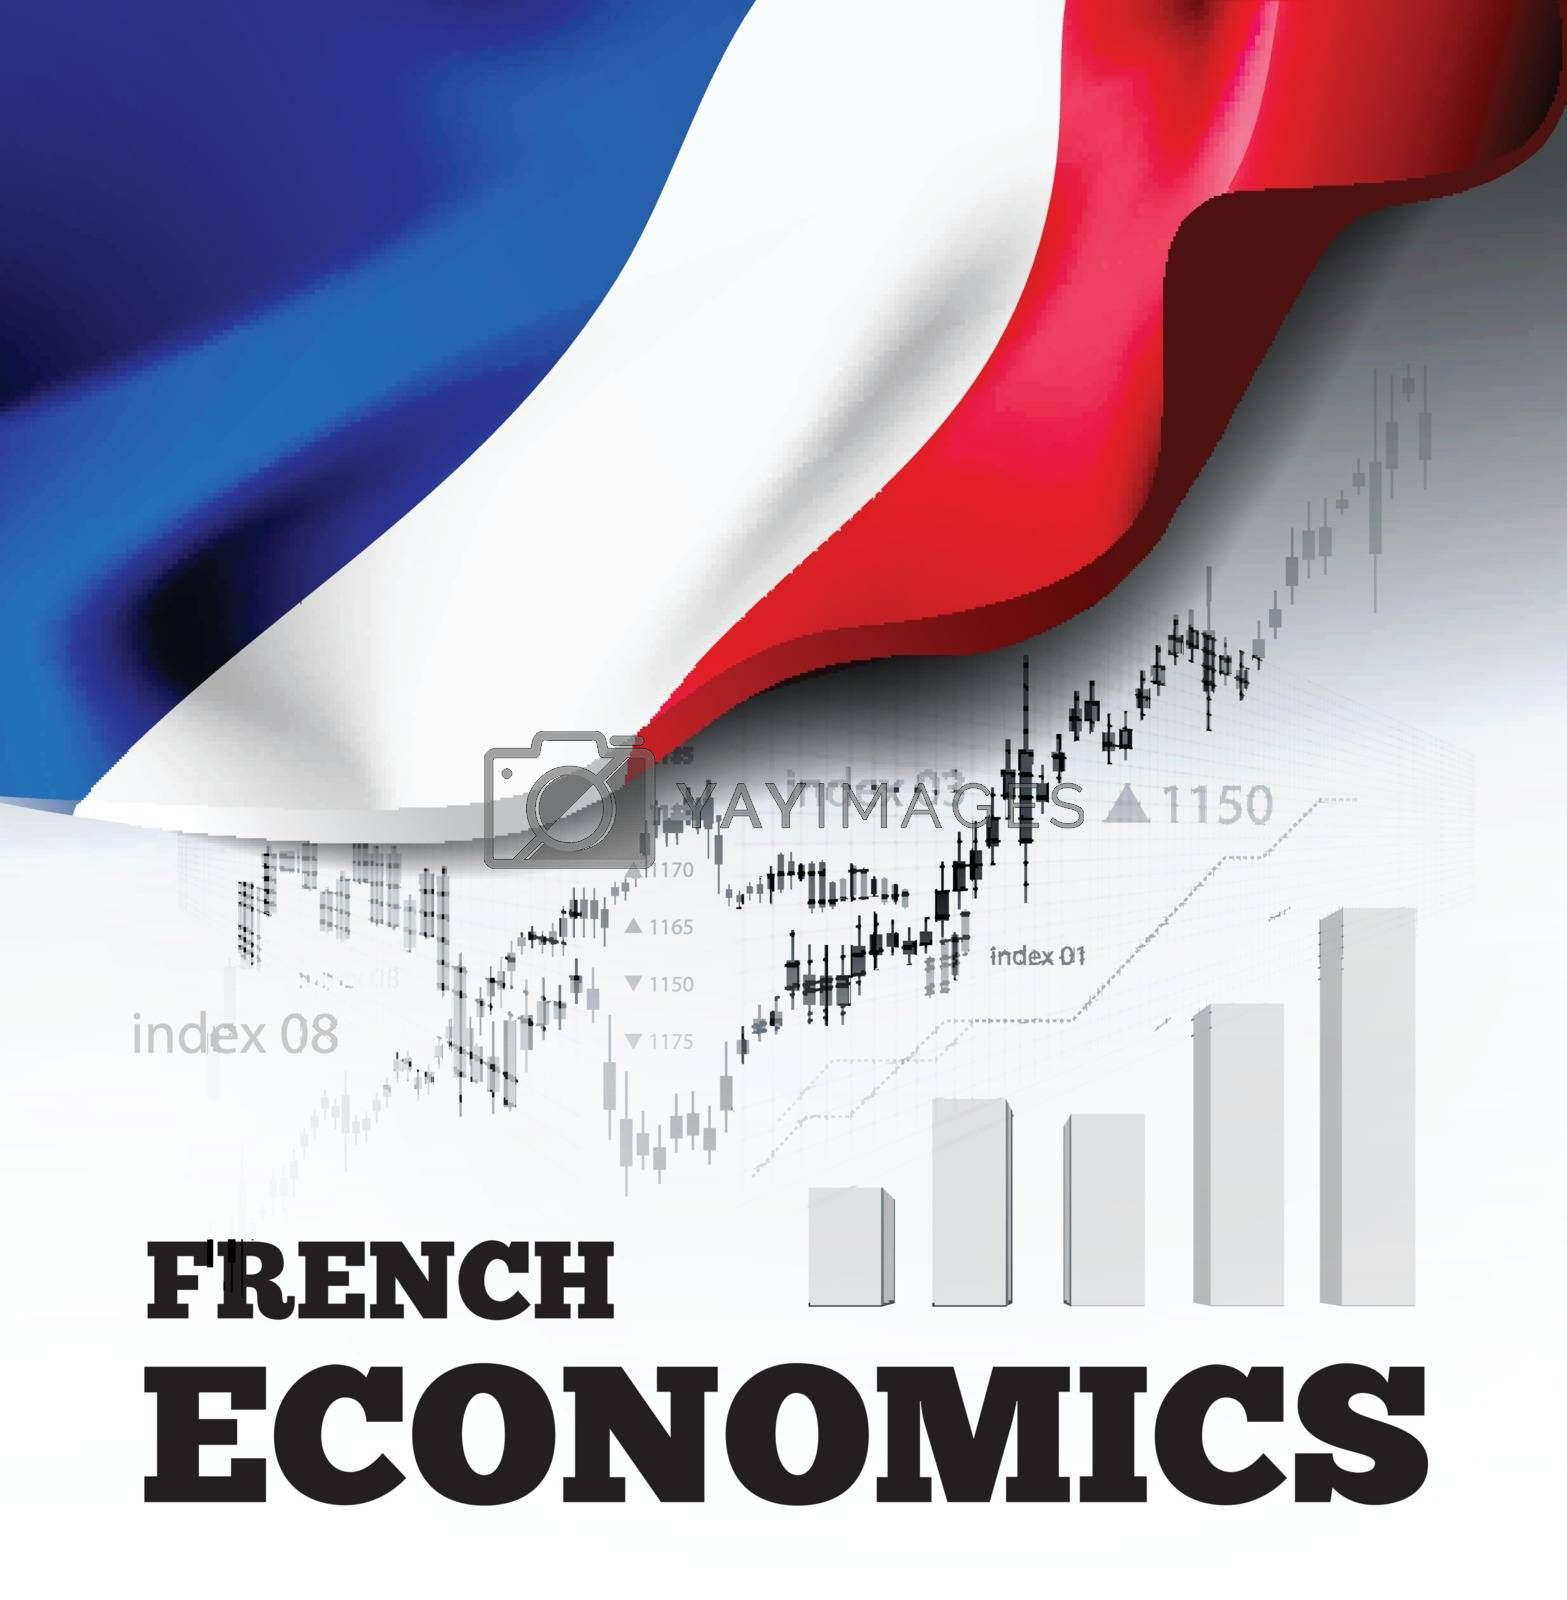 French economics vector illustration with france flag and business chart, bar chart stock numbers bull market, uptrend line graph symbolizes the welfare growth